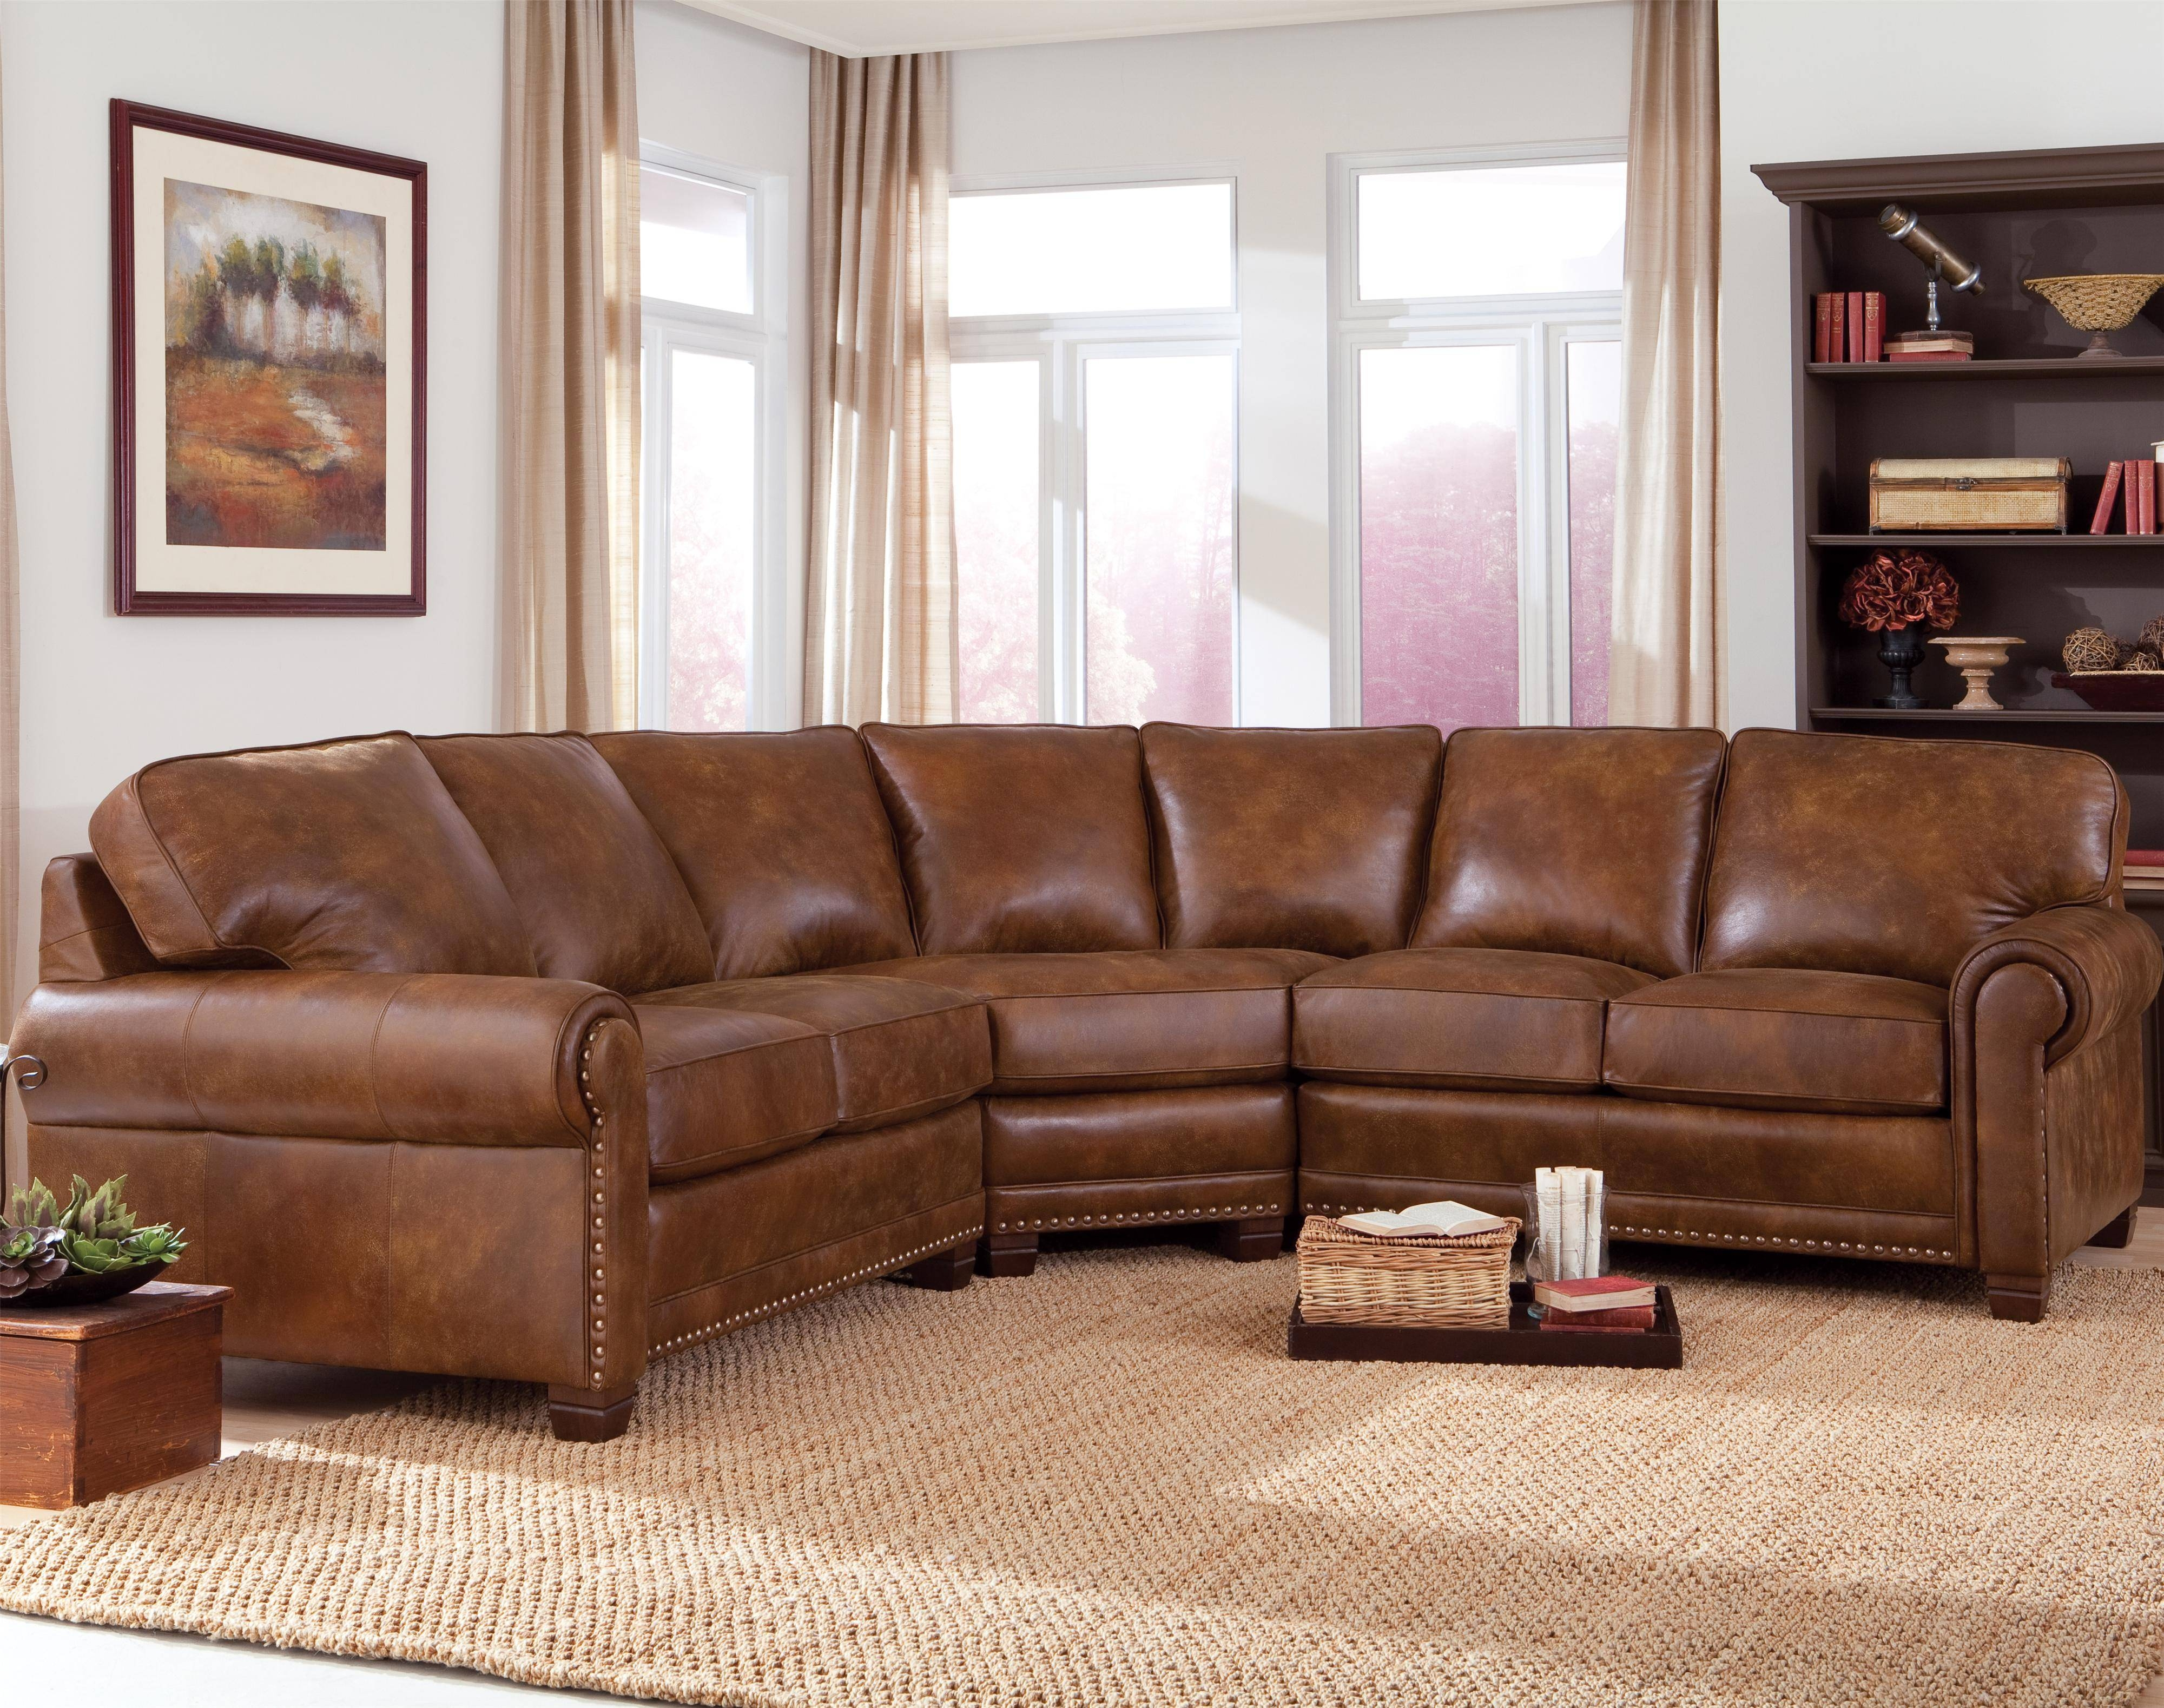 Soft Brown Leather Sectional Sofa | Tehranmix Decoration with regard to Traditional Sofas For Sale (Image 27 of 30)